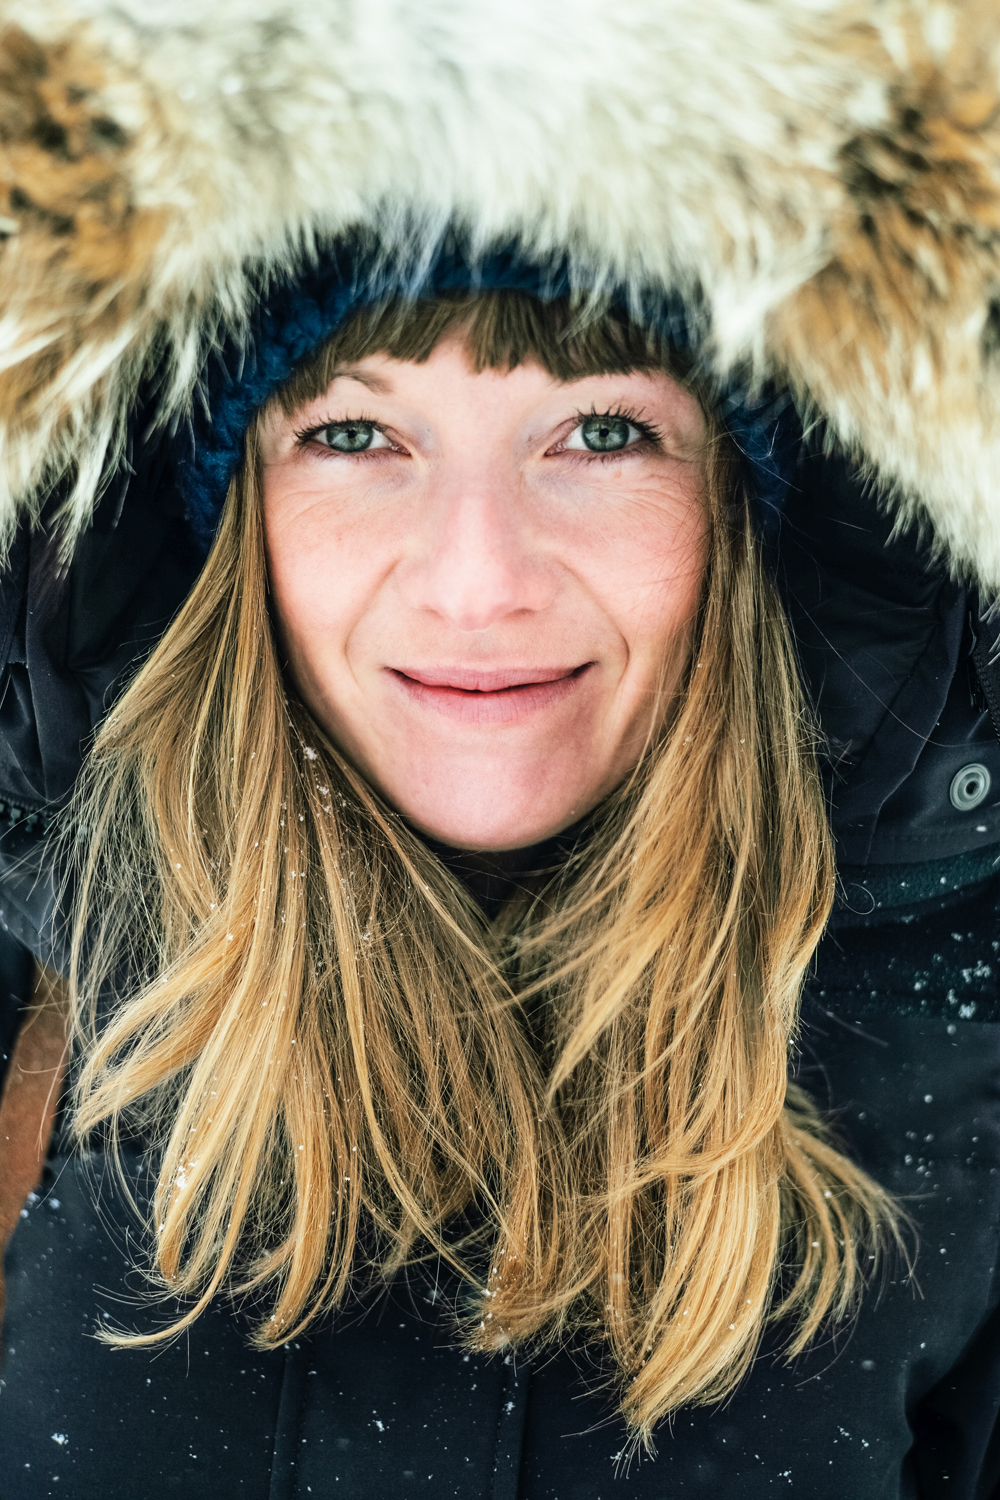 Kate-Golding-Winter.jpg